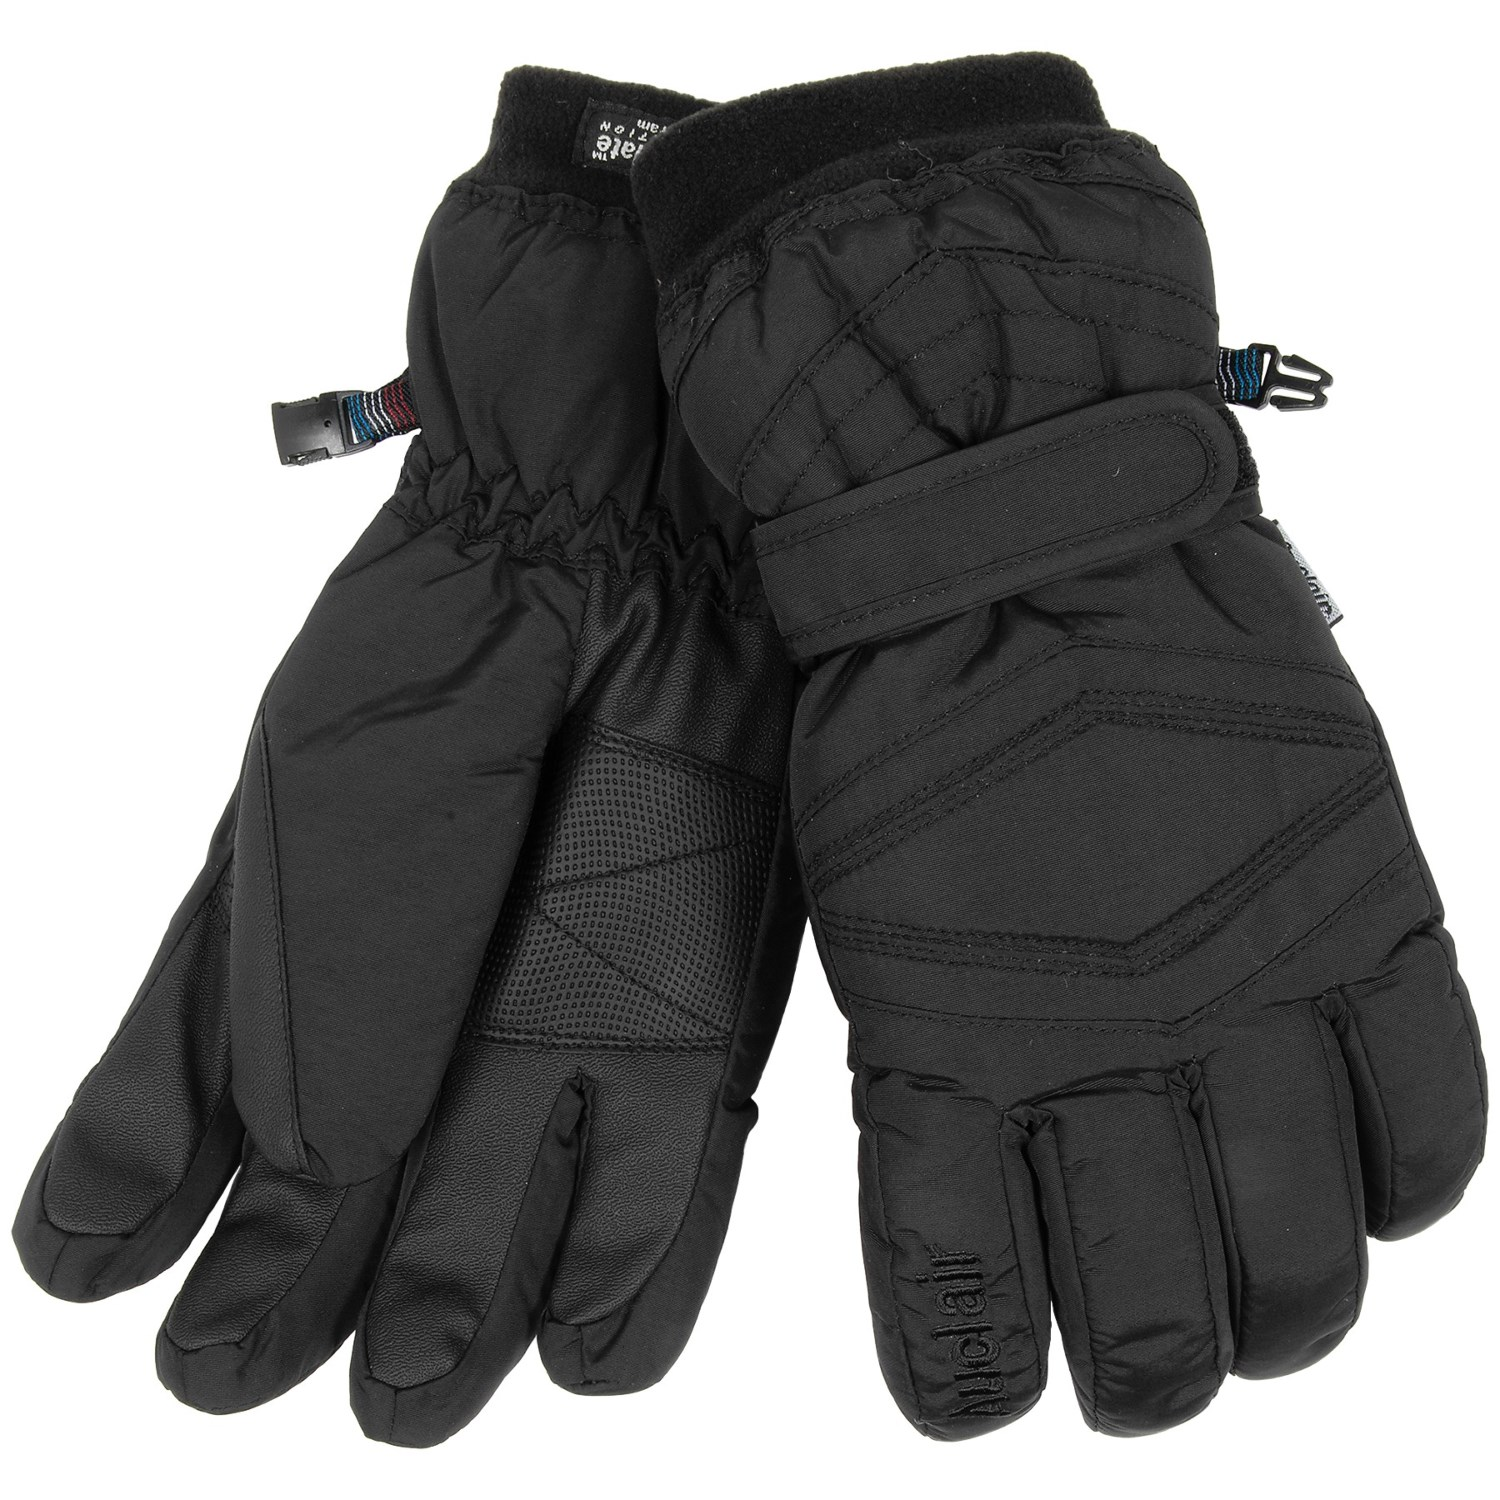 Mens leather insulated gloves - Click To Expand